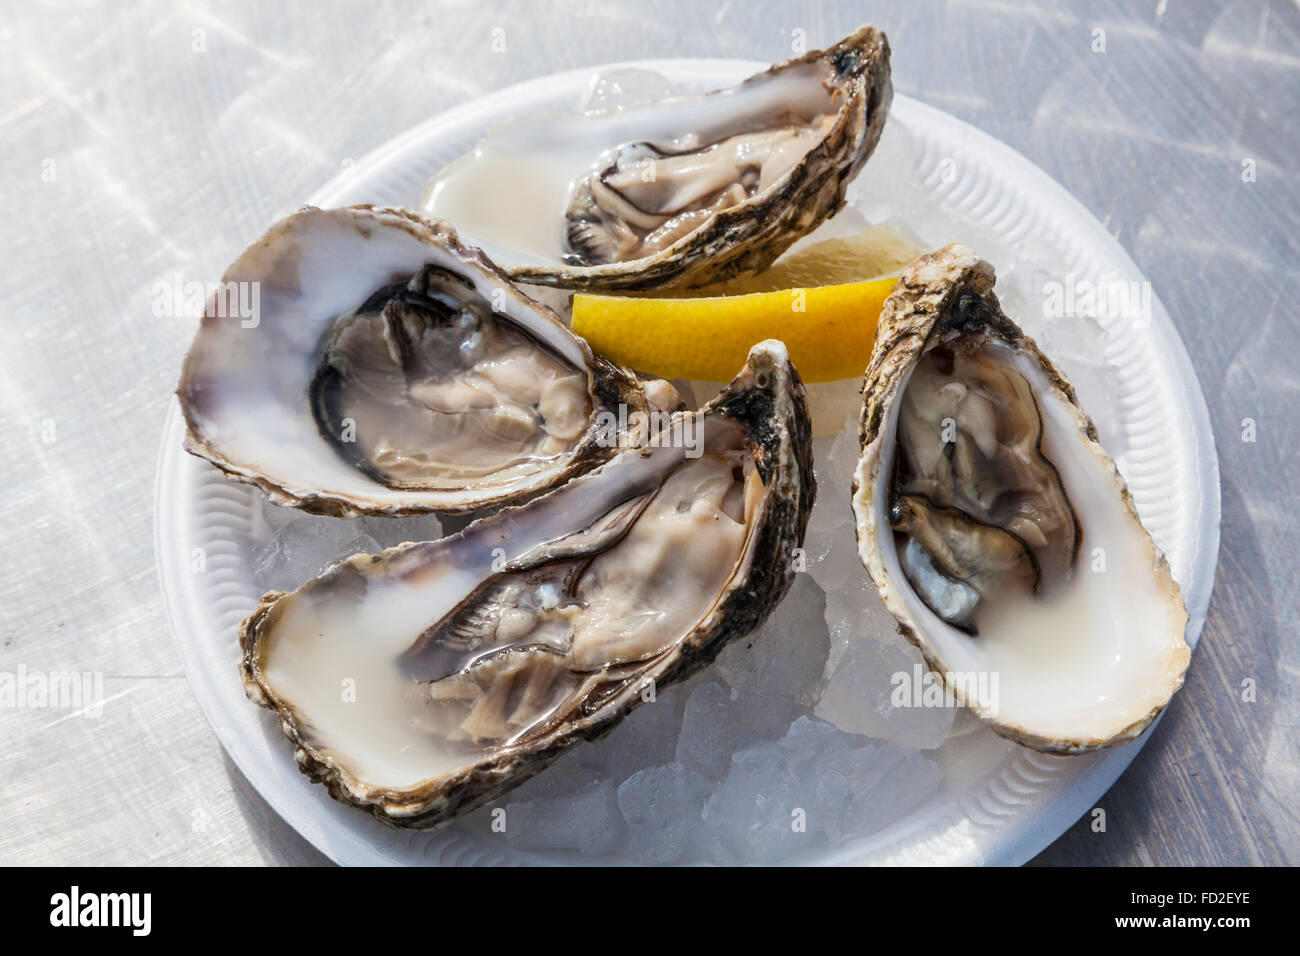 A plate of open oysters served in the traditional way over ice with a wedge of lemon. - Stock Image